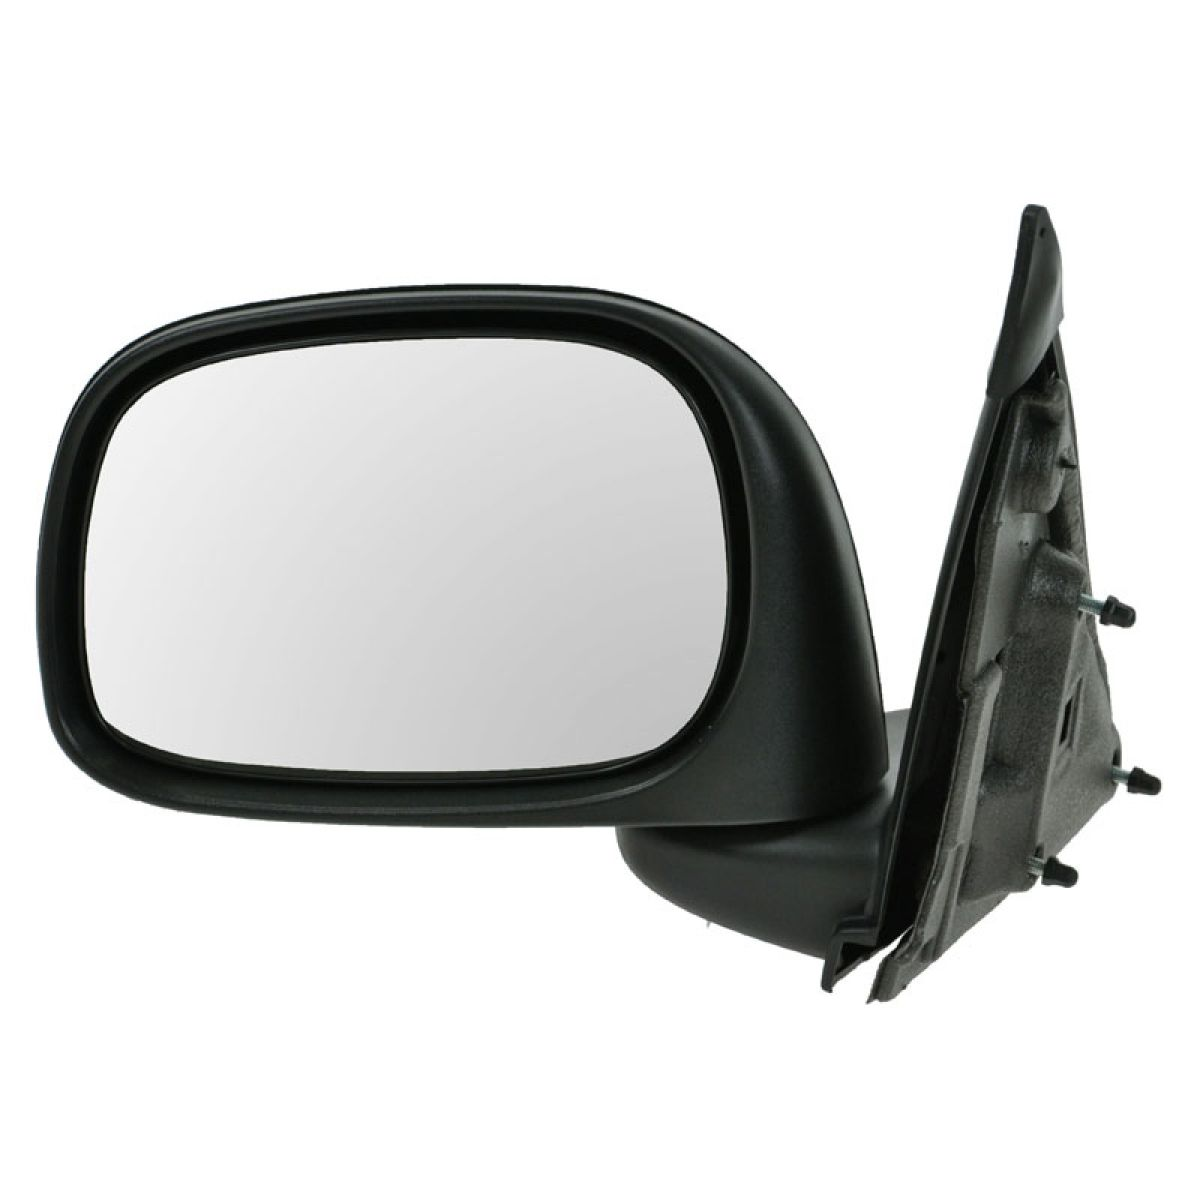 Dodge 02-08 RAM V8 Truck Left Driver Side Replacement Towing Mirror Assmebly